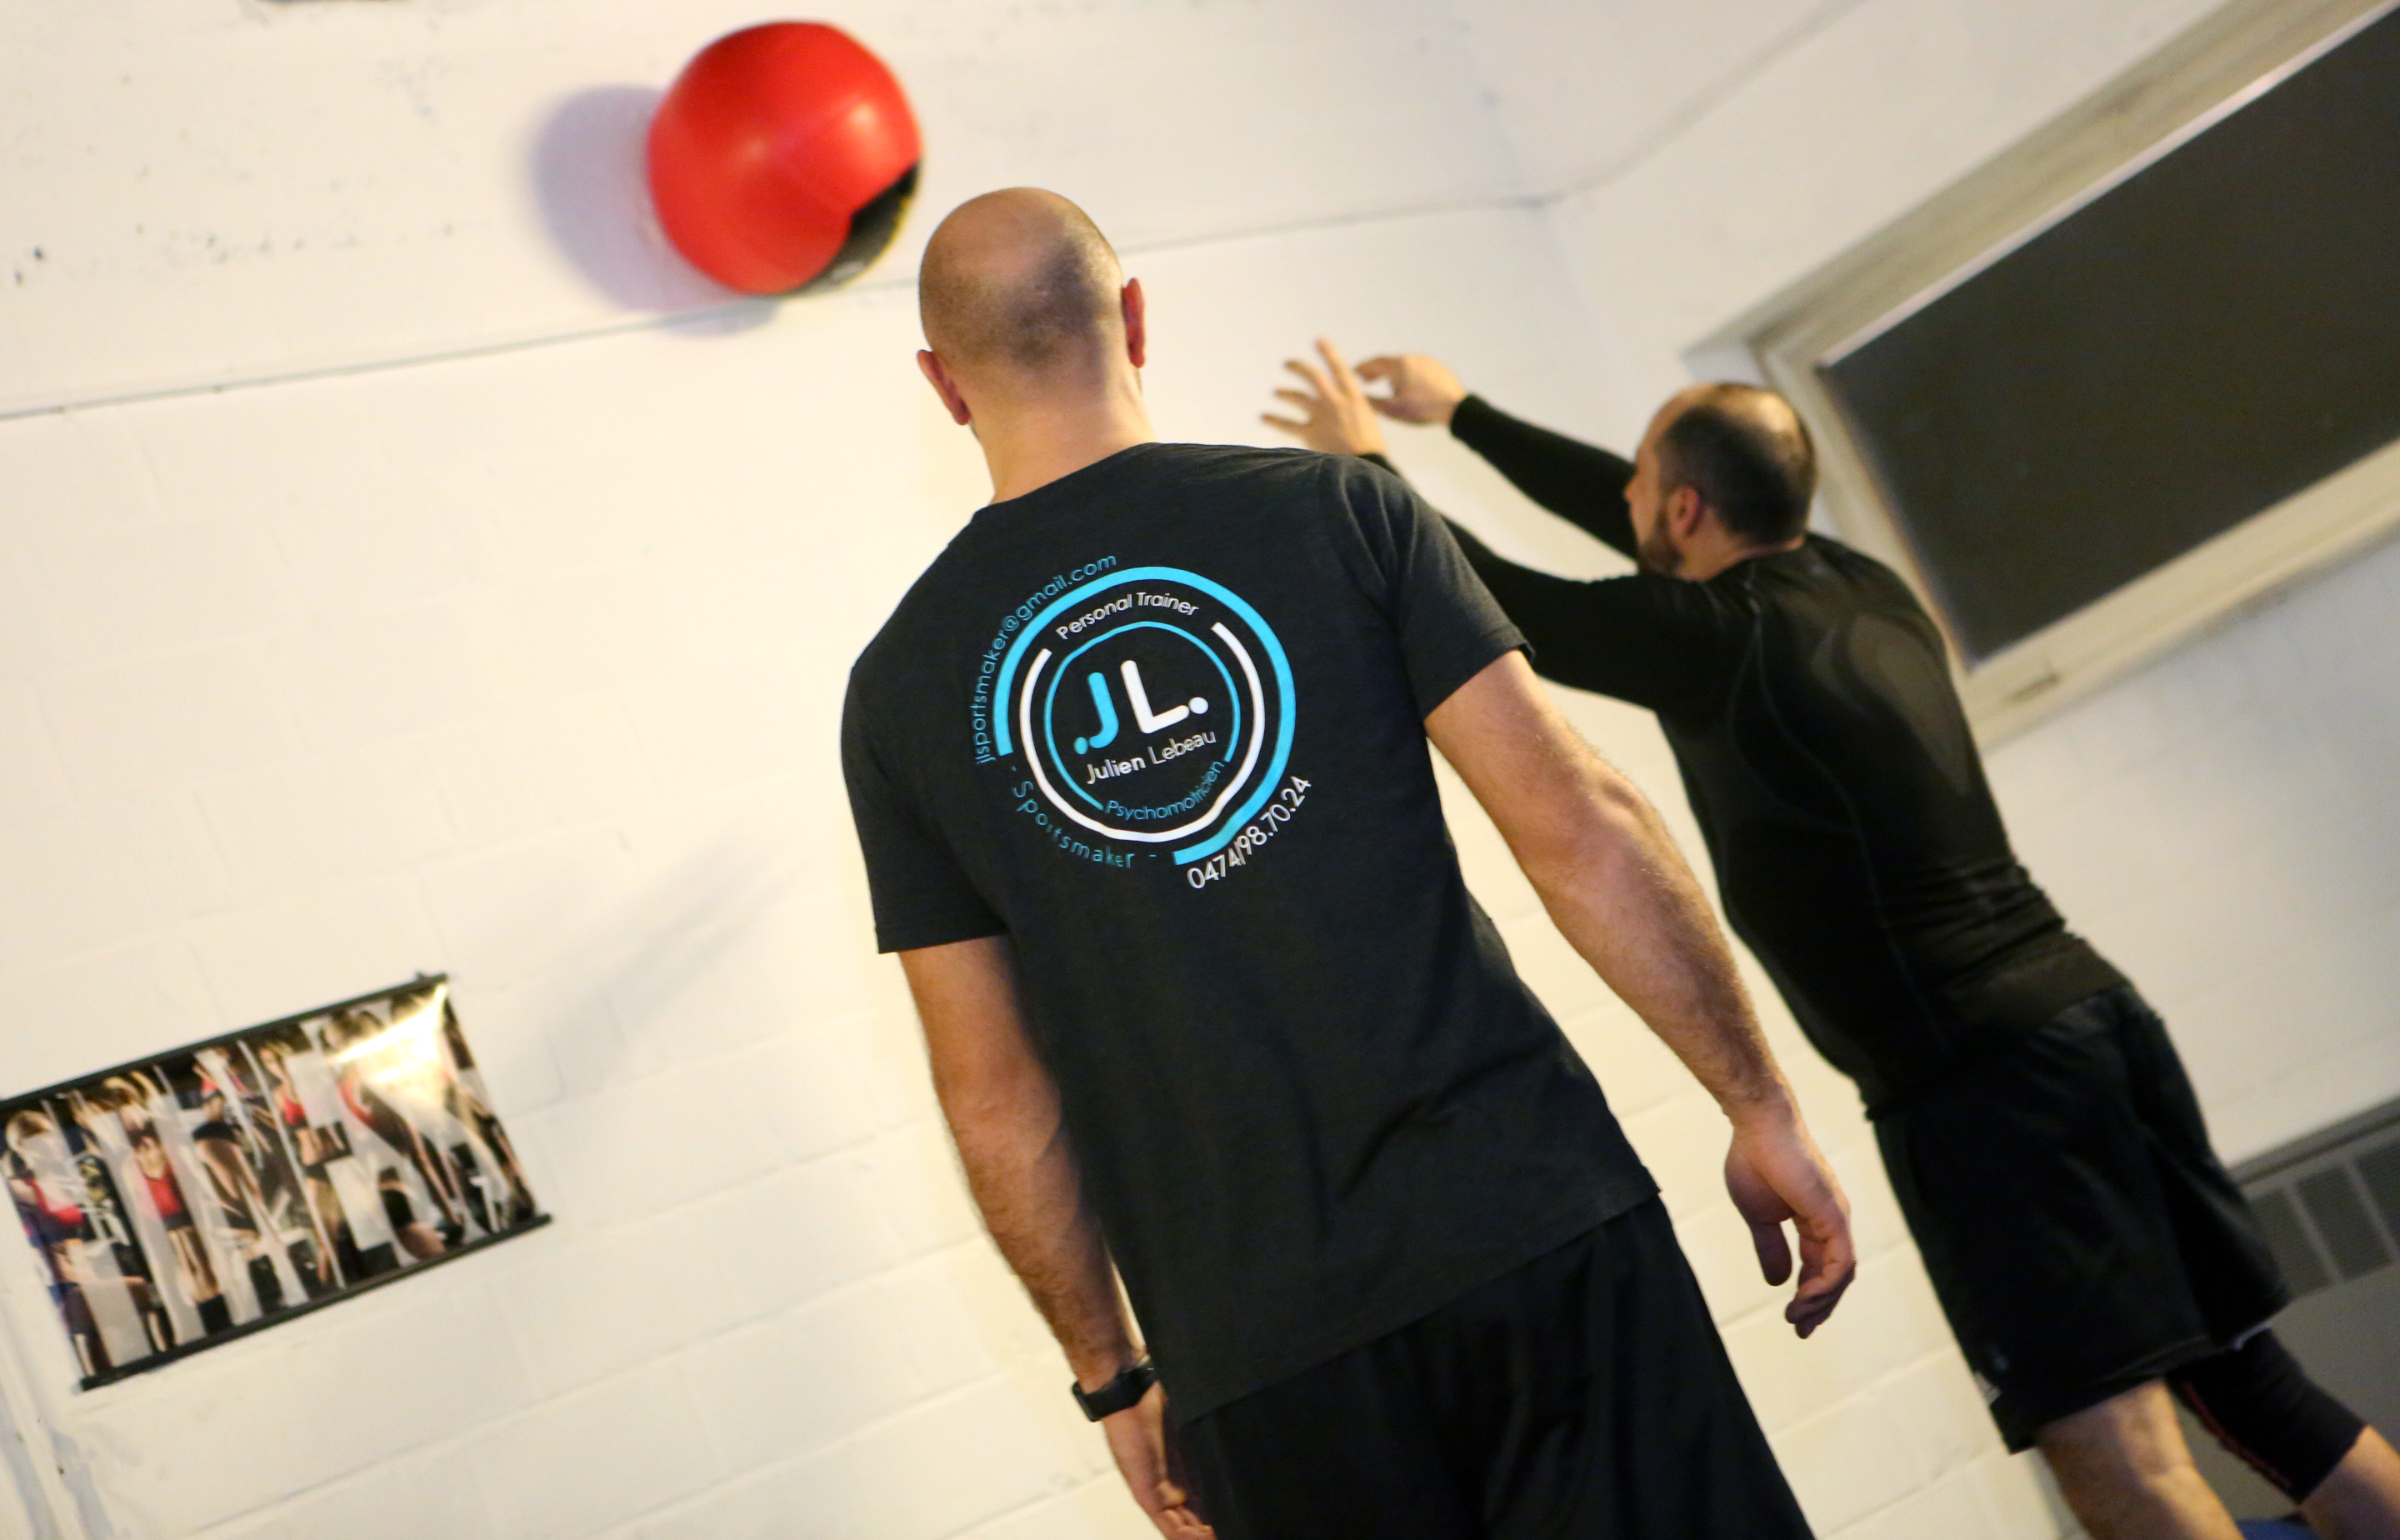 Sportsmaker - Circuit training